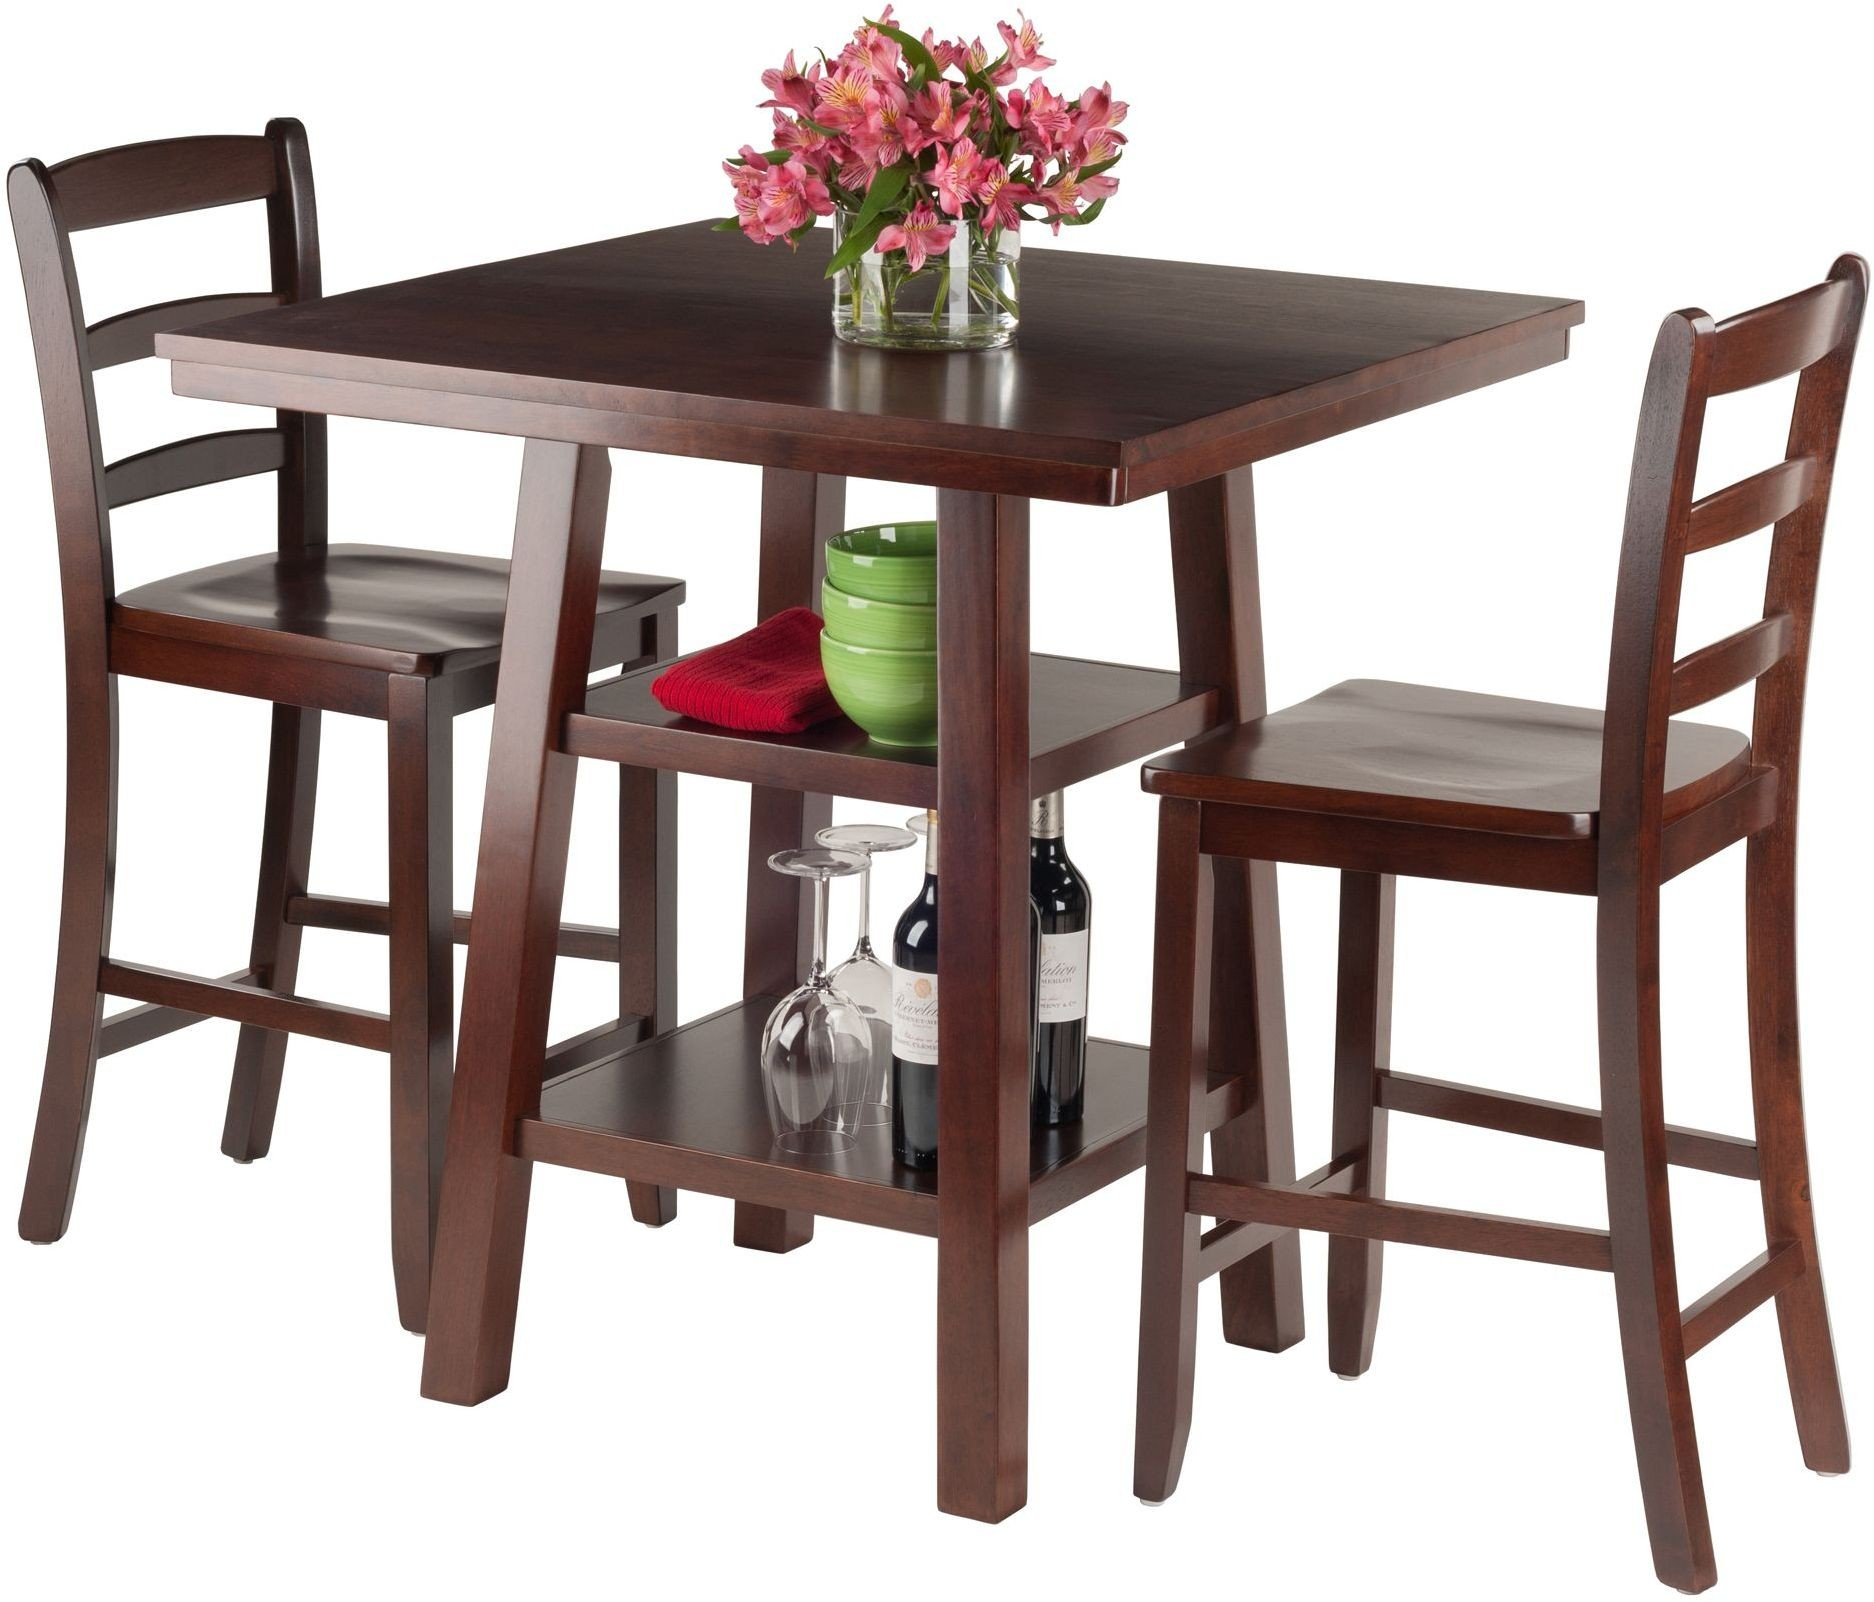 Orlando Walnut Counter Height Dining Table from  : 943122 orlandoprop1winsomewoods from colemanfurniture.com size 1874 x 1602 jpeg 324kB